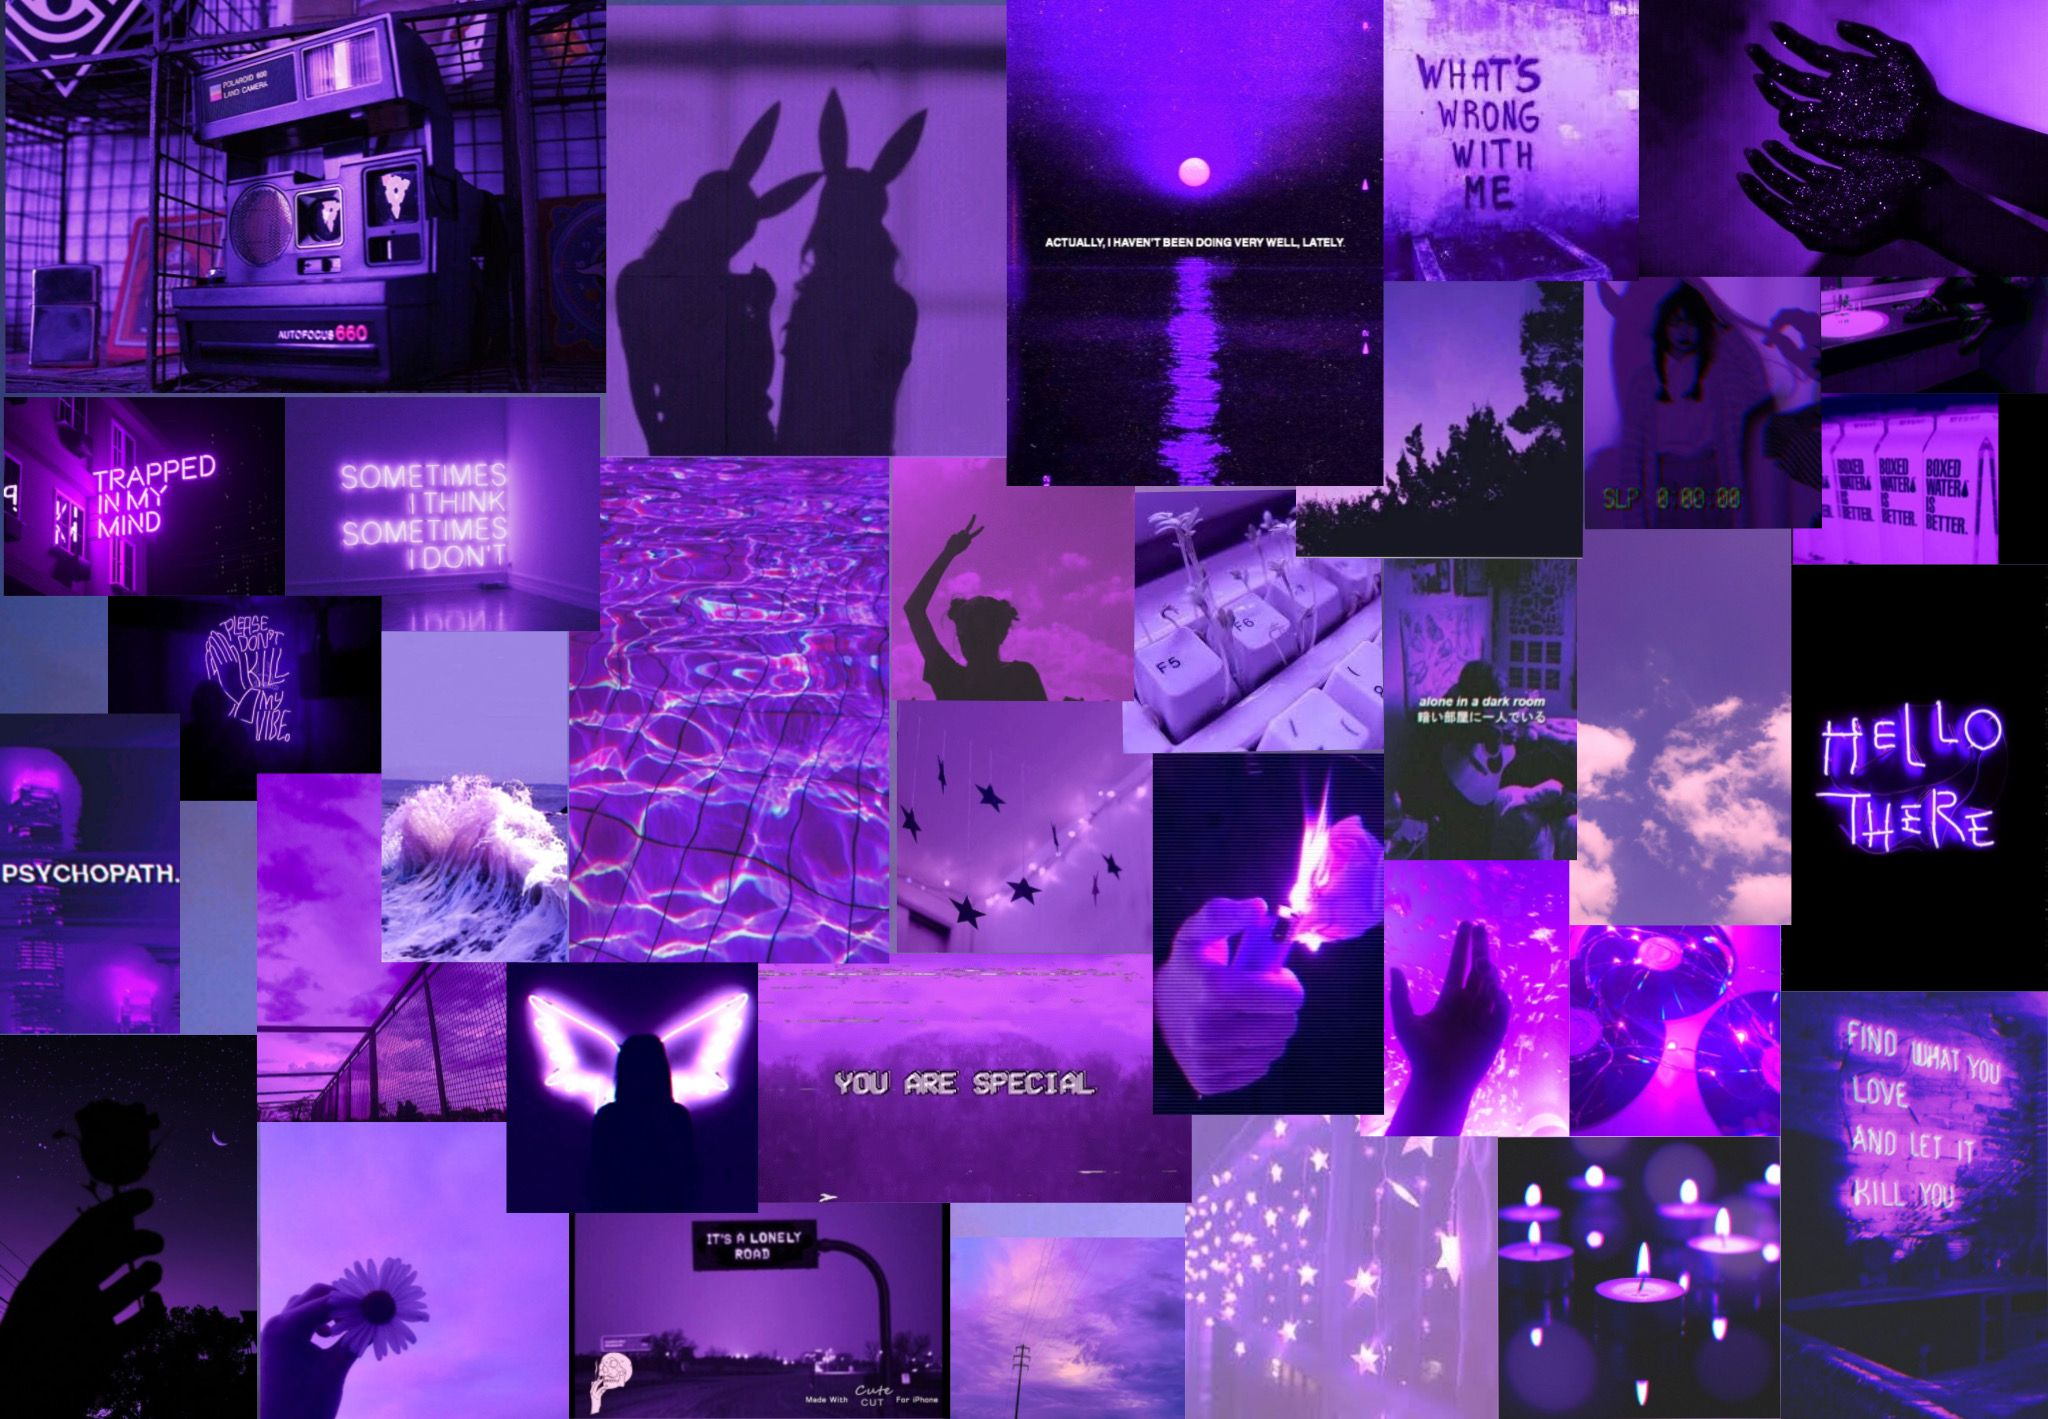 Pin By Vicktoria On Wallpapers Purple Wallpaper Purple Aesthetic Aesthetic Desktop Wallpaper